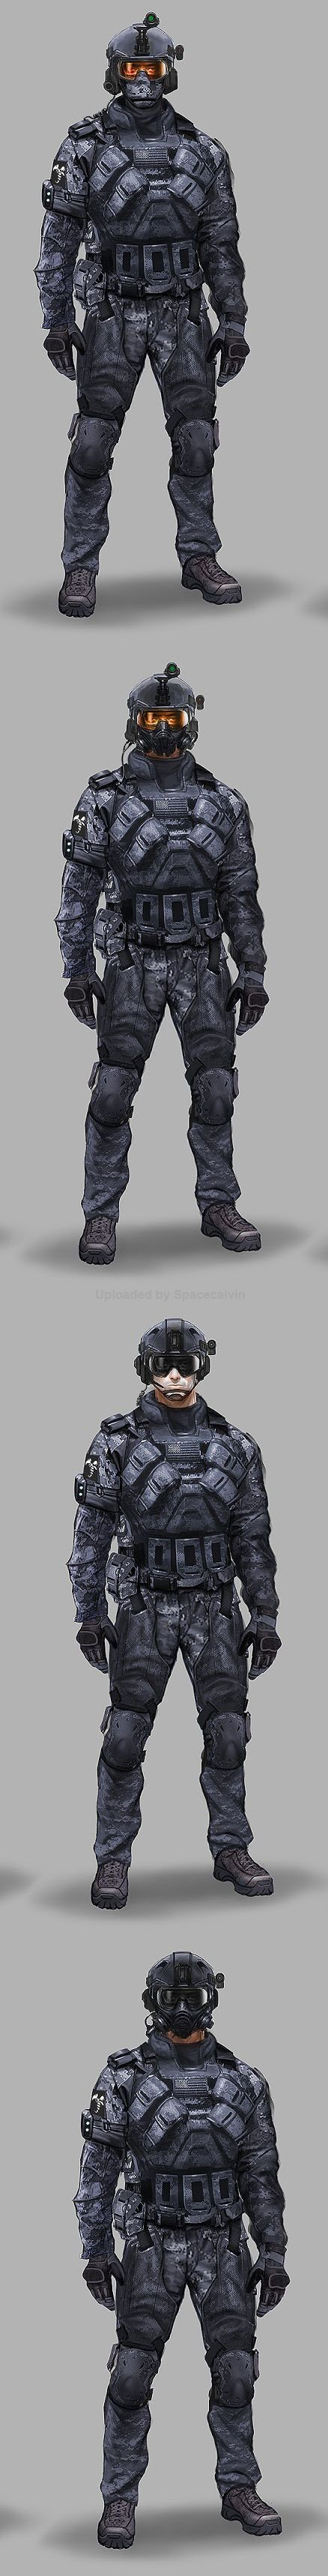 Small changes to a character's equipment can have a big impact not only on how the model looks but on how it acts on the tabletop.  Concepts_ASSAULT_head_alts by Eric Chiang